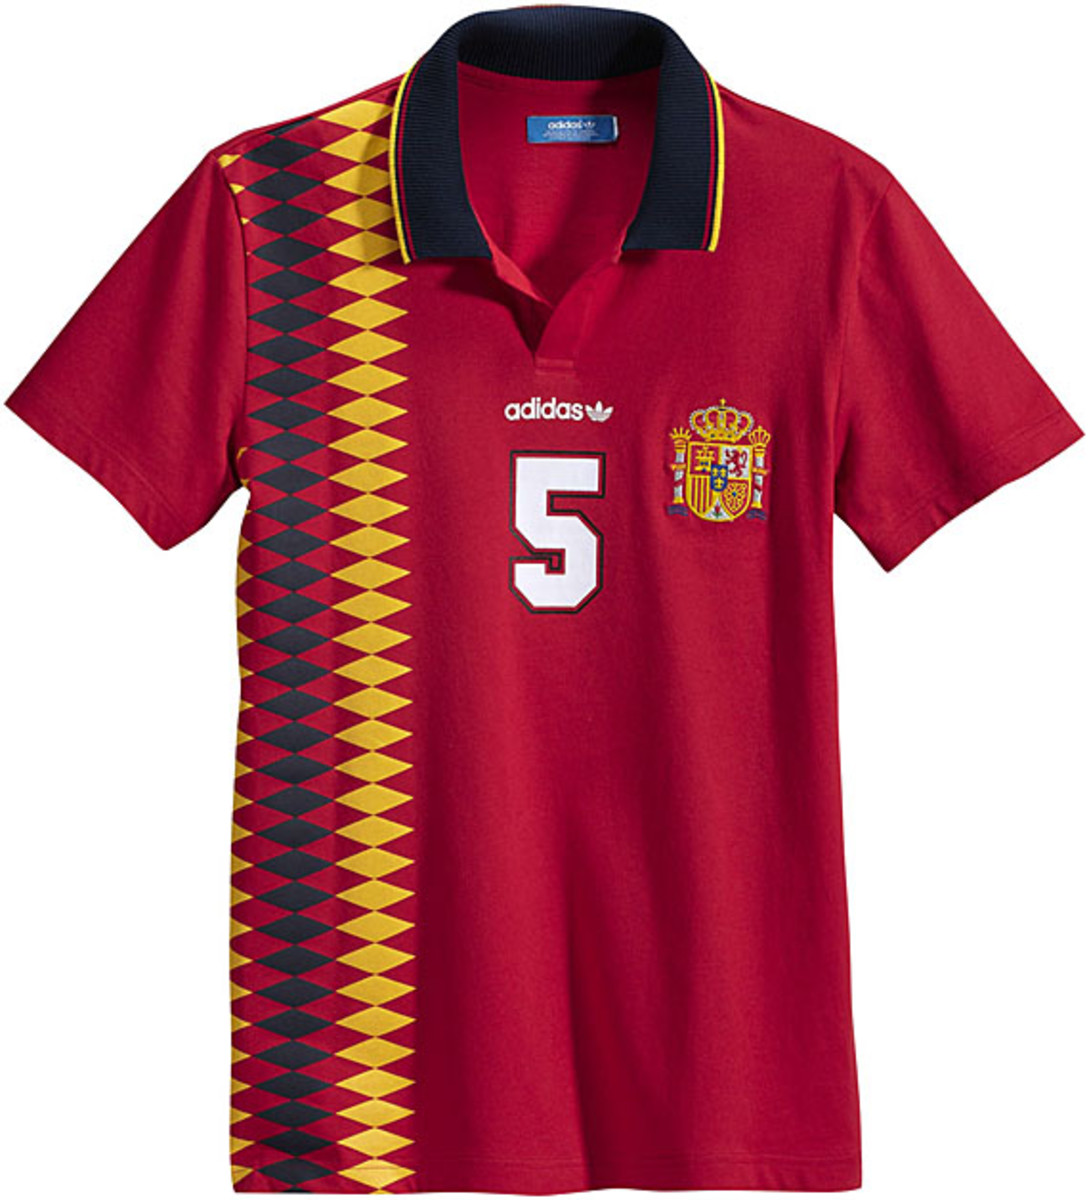 adidas-originals-euro-cup-2012-inspired-fan-gear-11